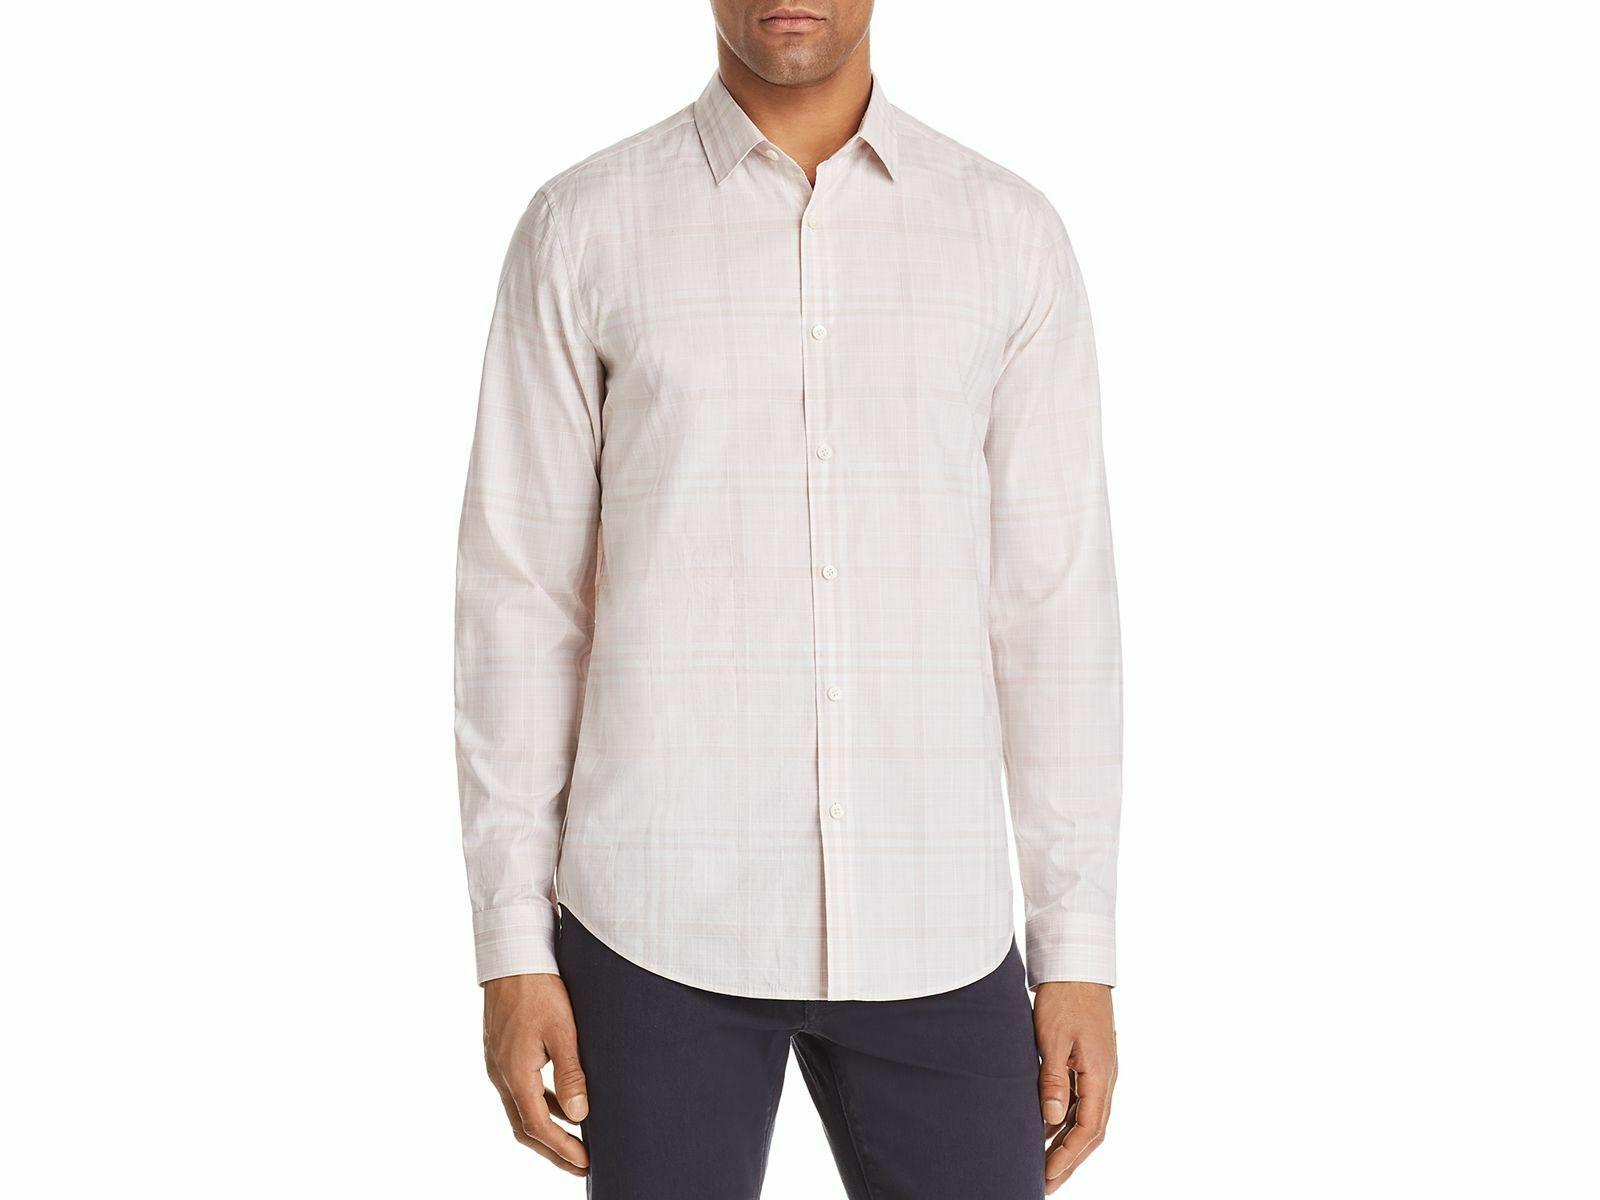 THEORY Men's SLIM-FIT PINK WHITE PLAID LONG-SLEEVE BUTTON TOP SPORT SHIRT L